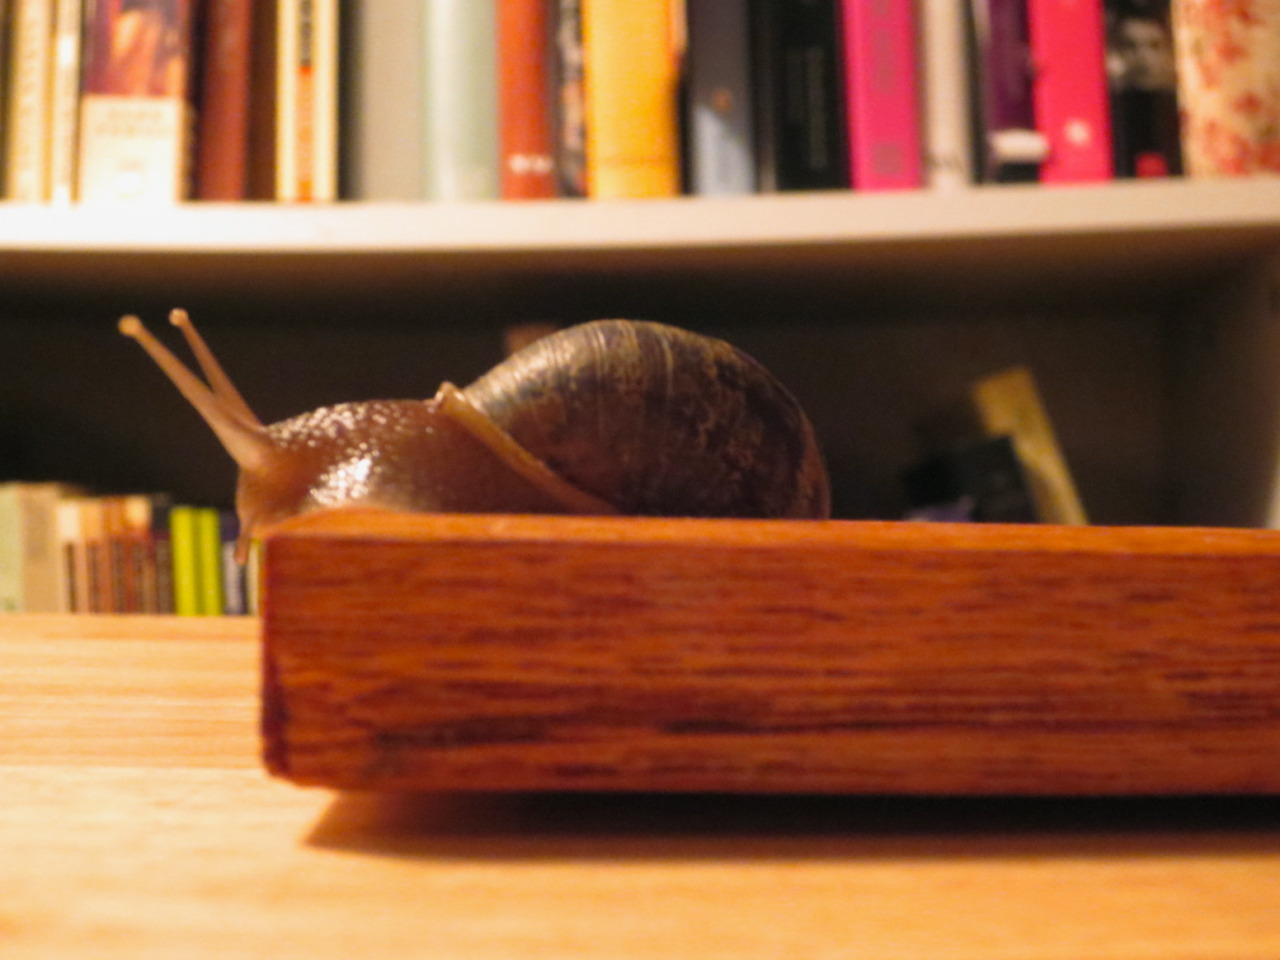 This snail snuck in on a small plant from Trader Joe's in November 2012 - it's been too cold to put him out, so he gets a couple of fresh lettuce leaves every night & is thriving.